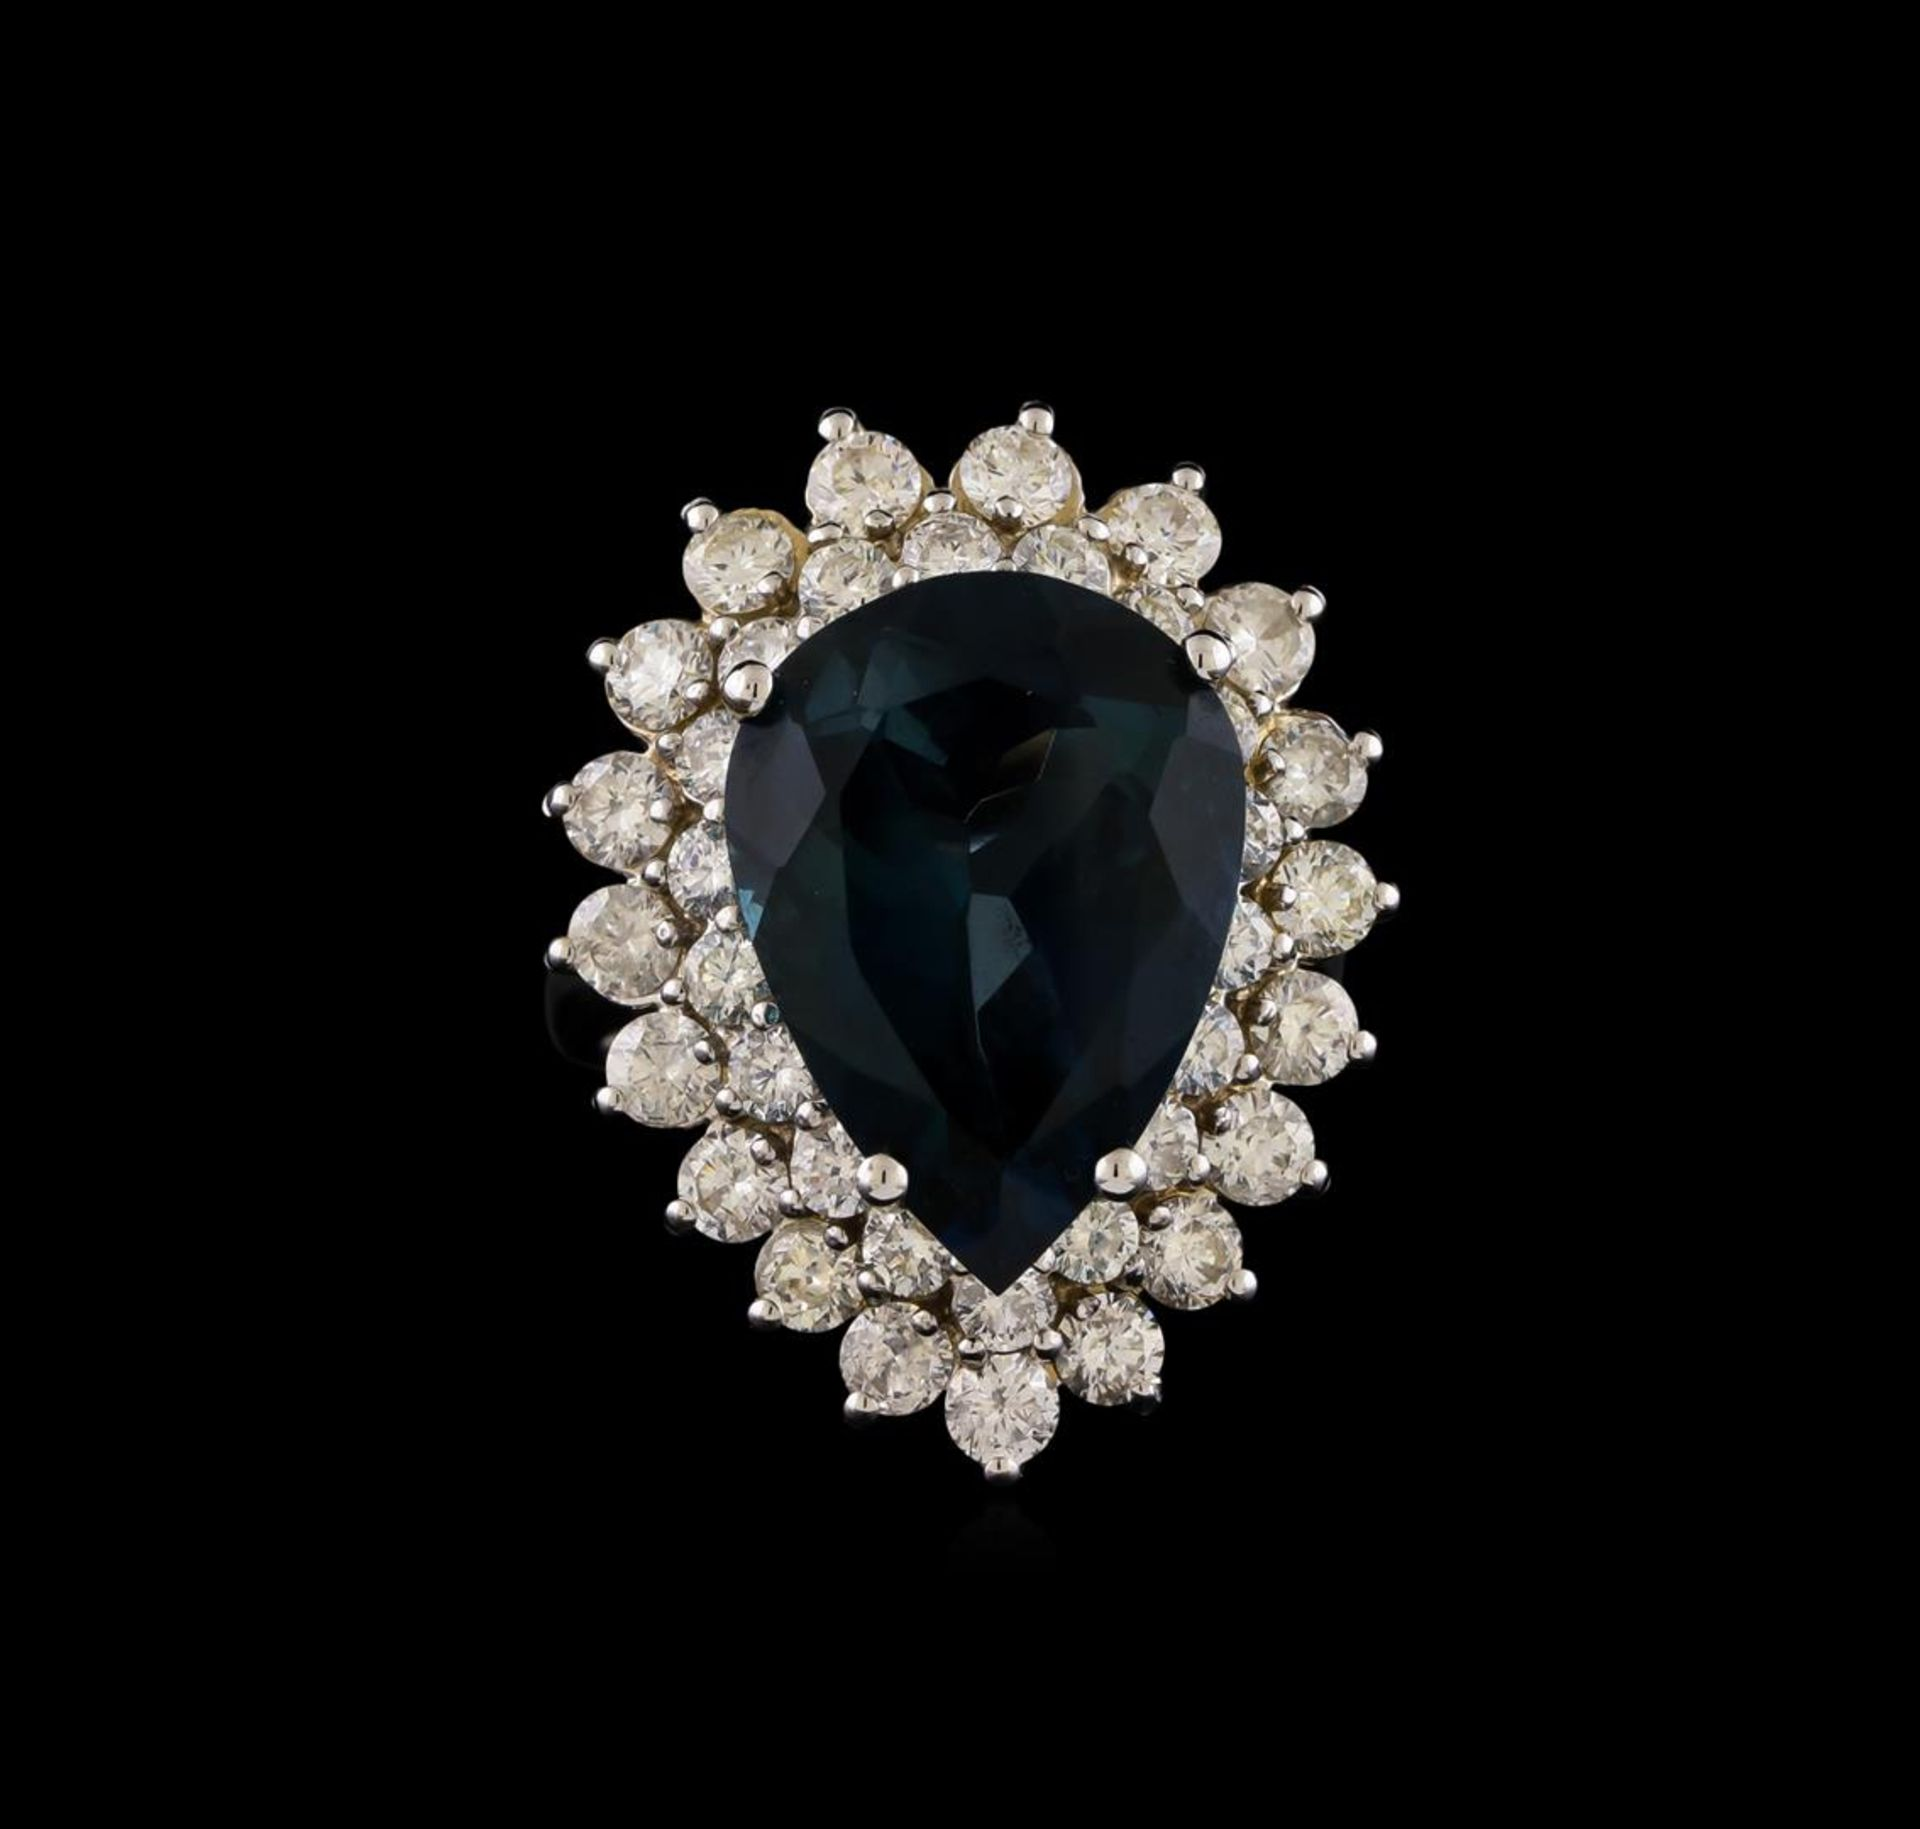 14KT White Gold 12.42 ctw Topaz and Diamond Ring - Image 2 of 5